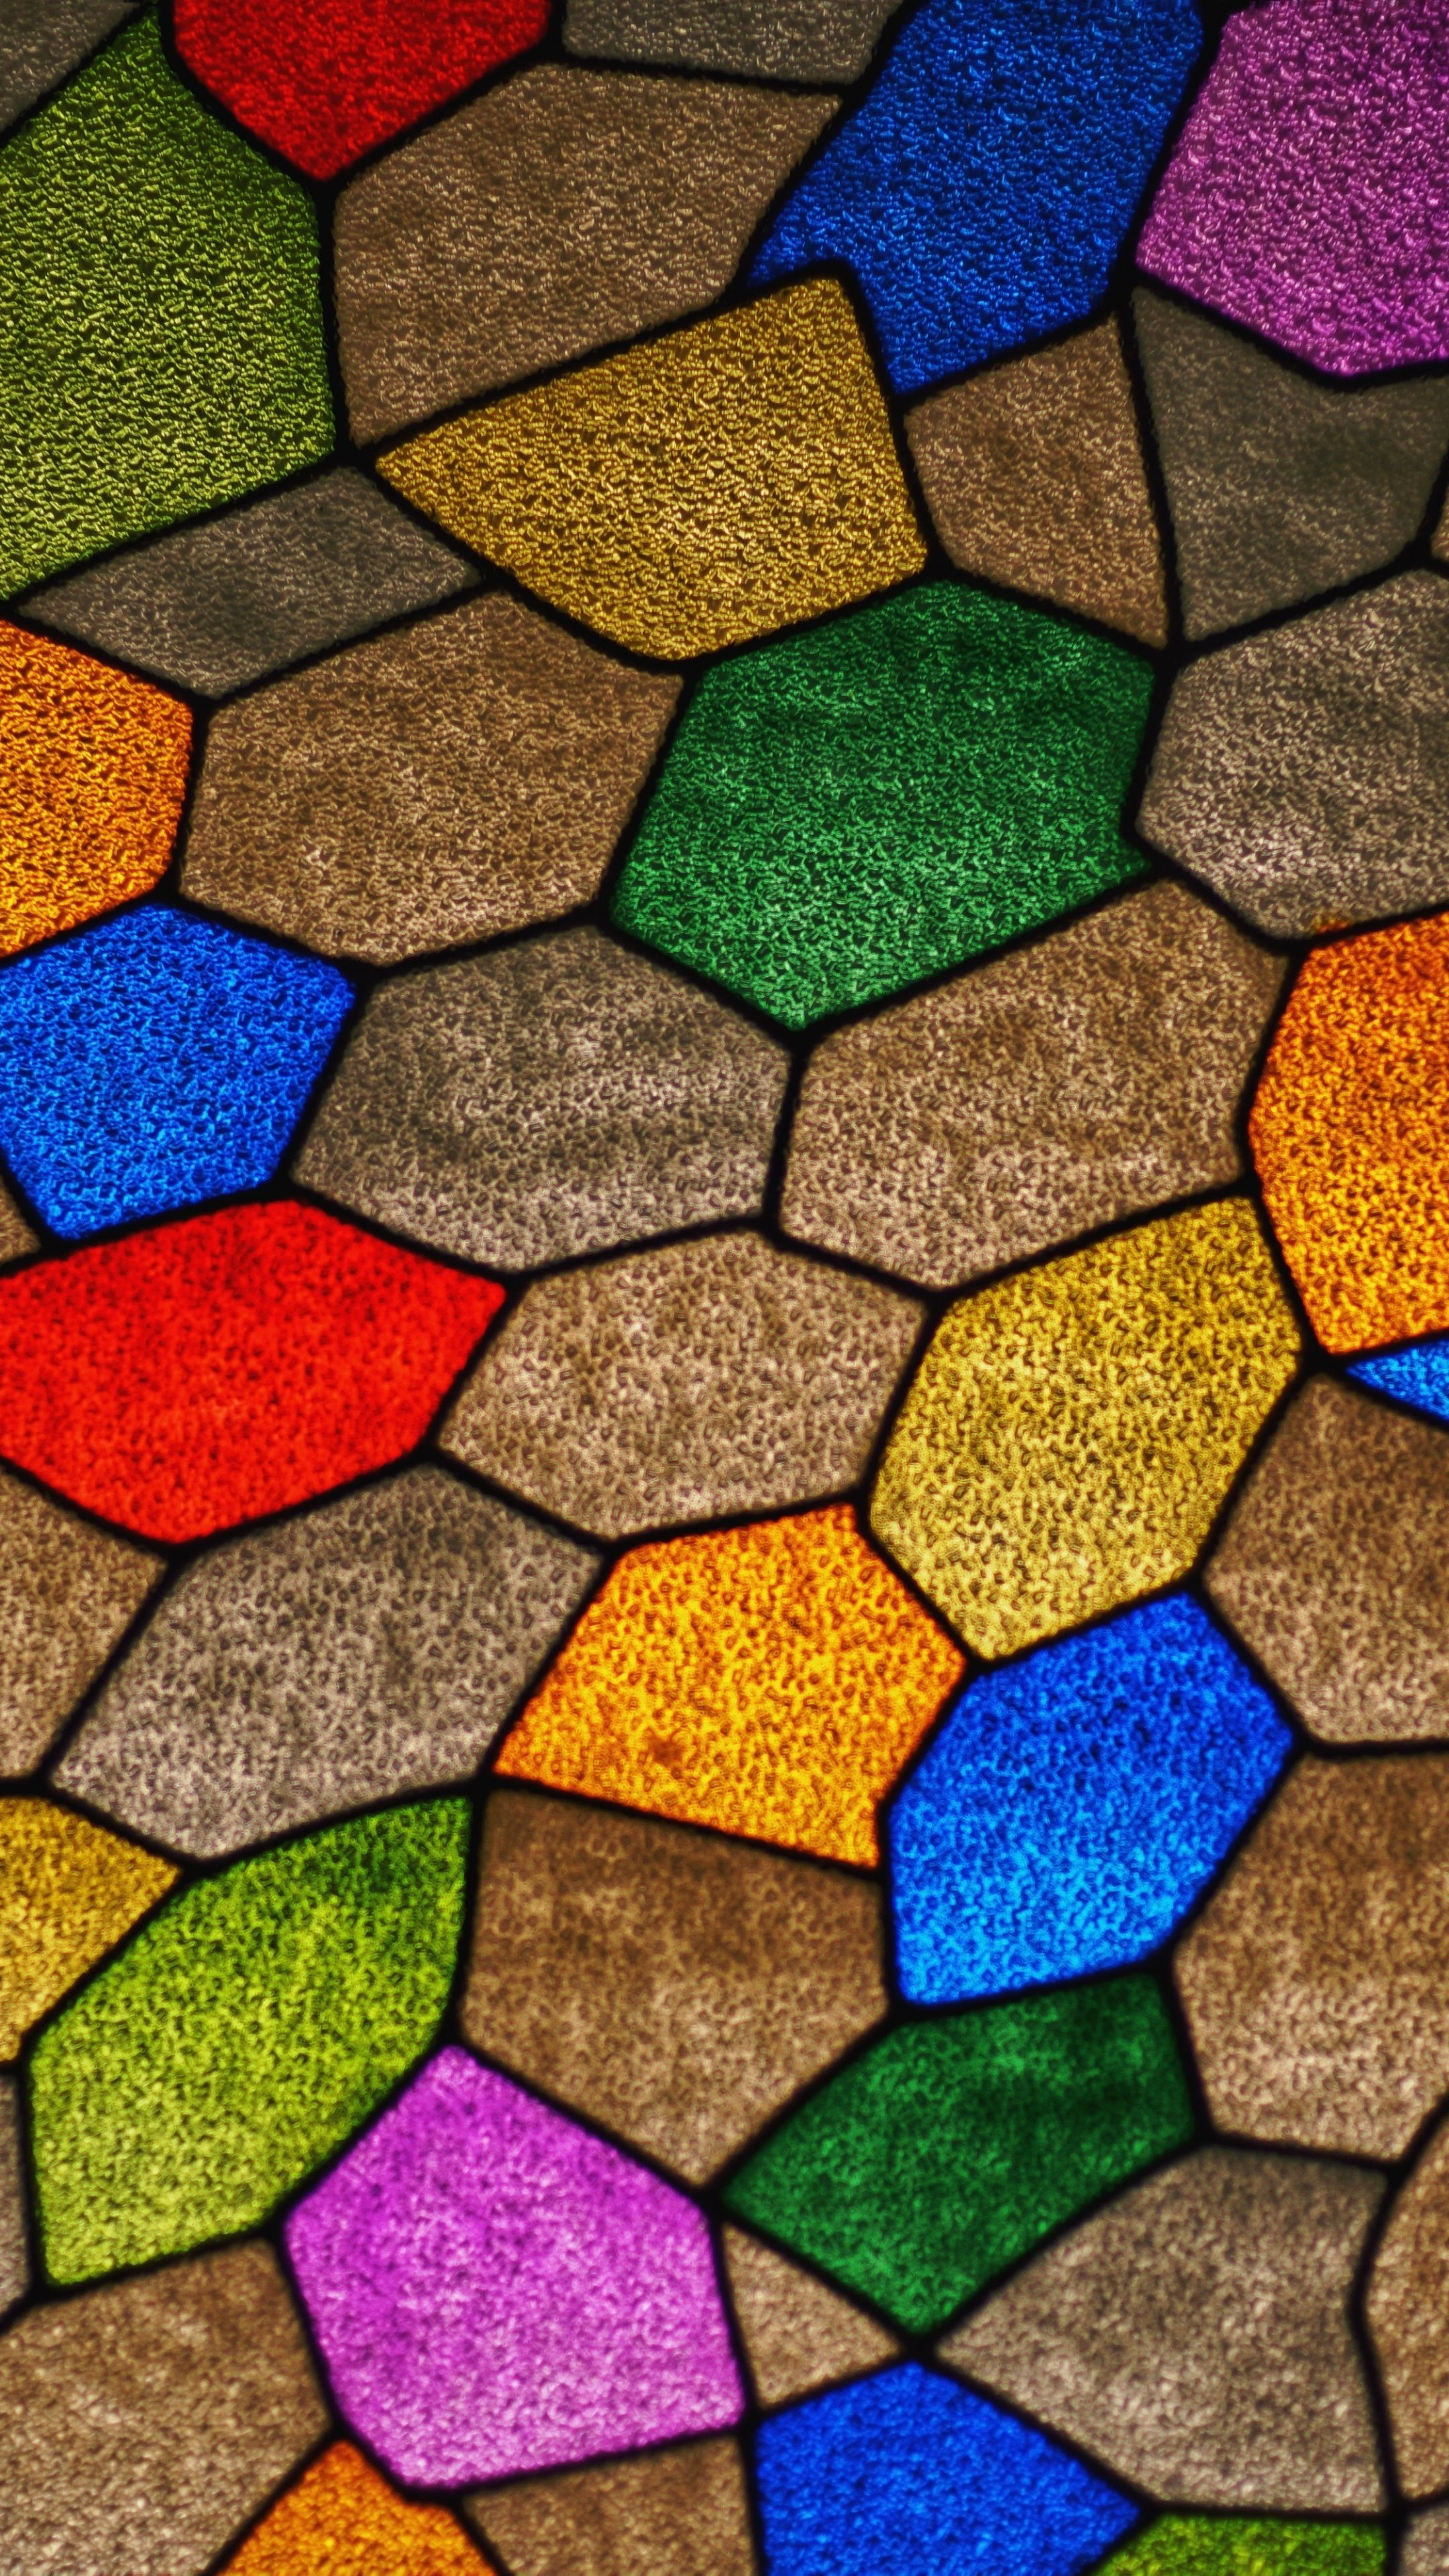 Tile, mosaic, pattern, colorful, 2160x3840 wallpaper